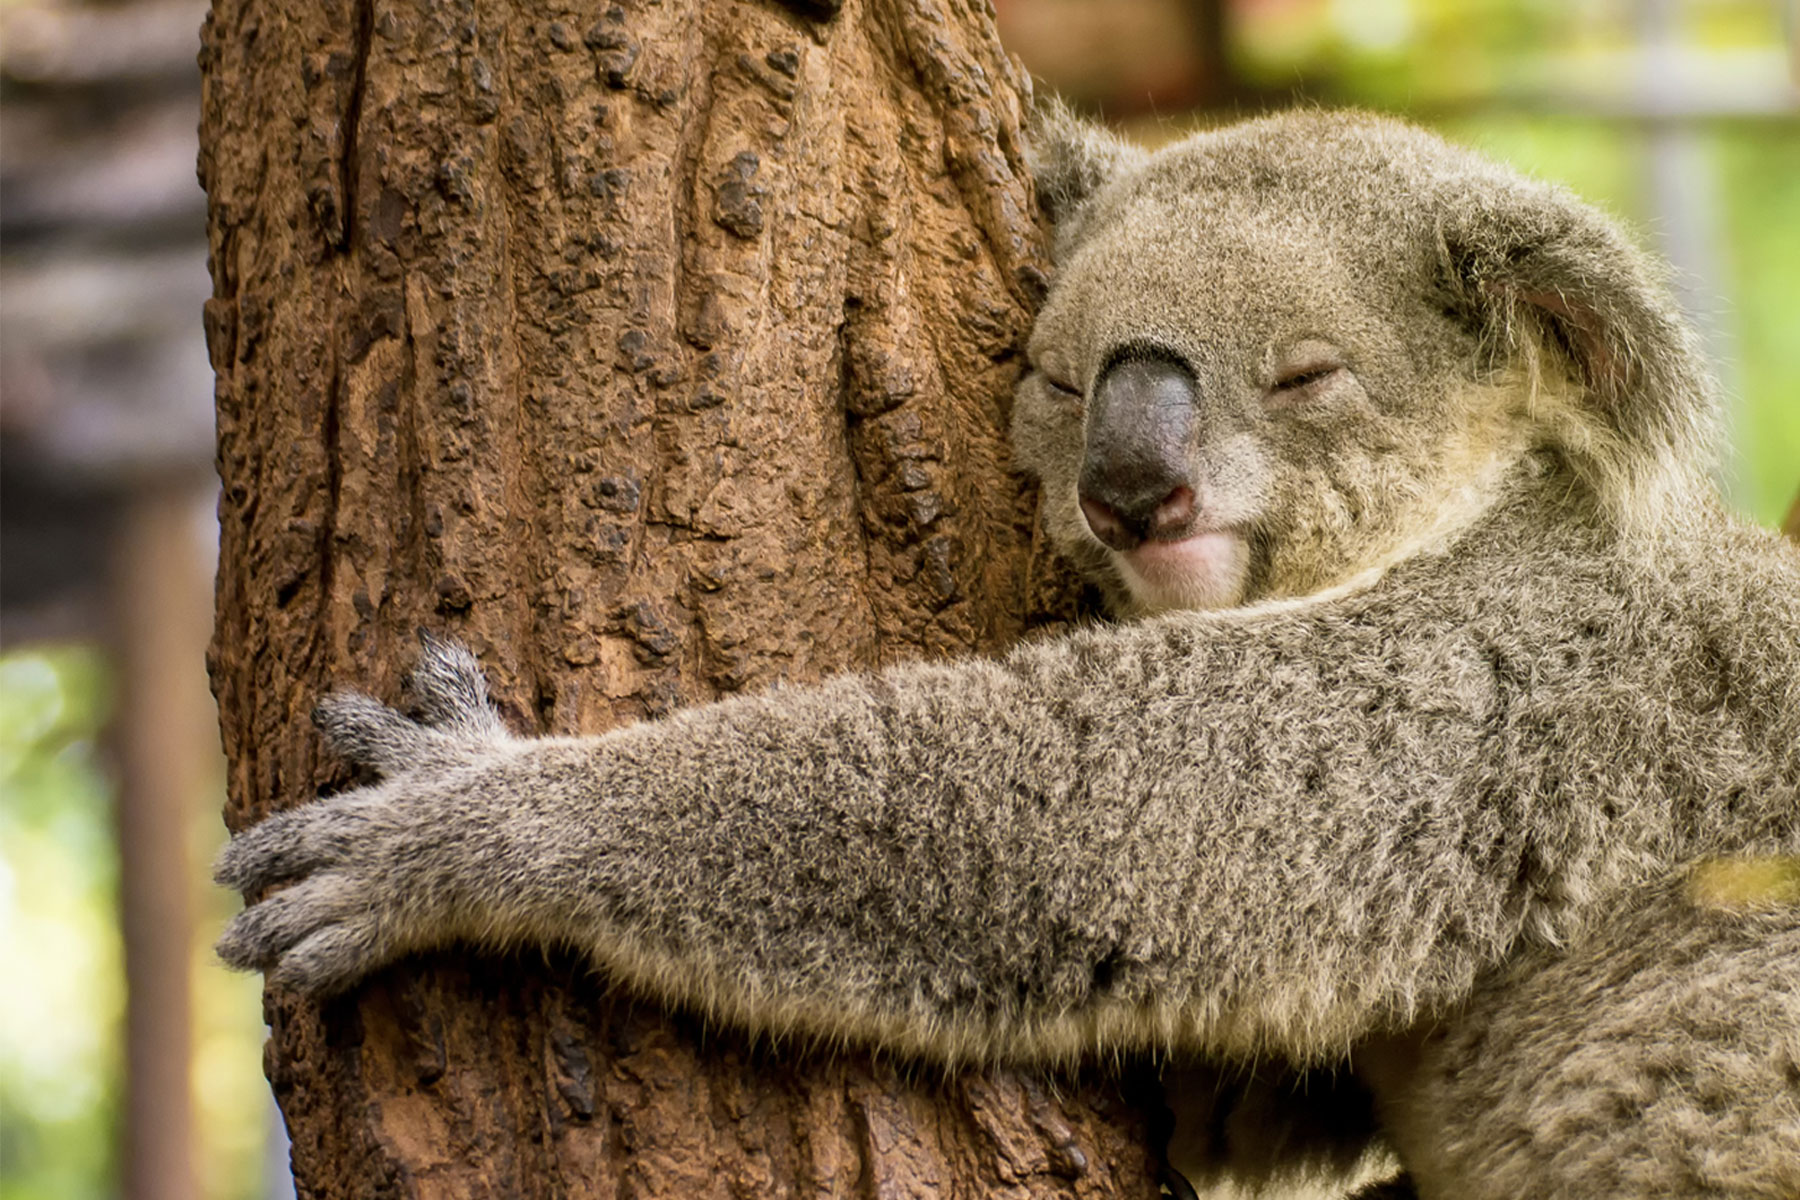 A koala clinging tightly to a tree